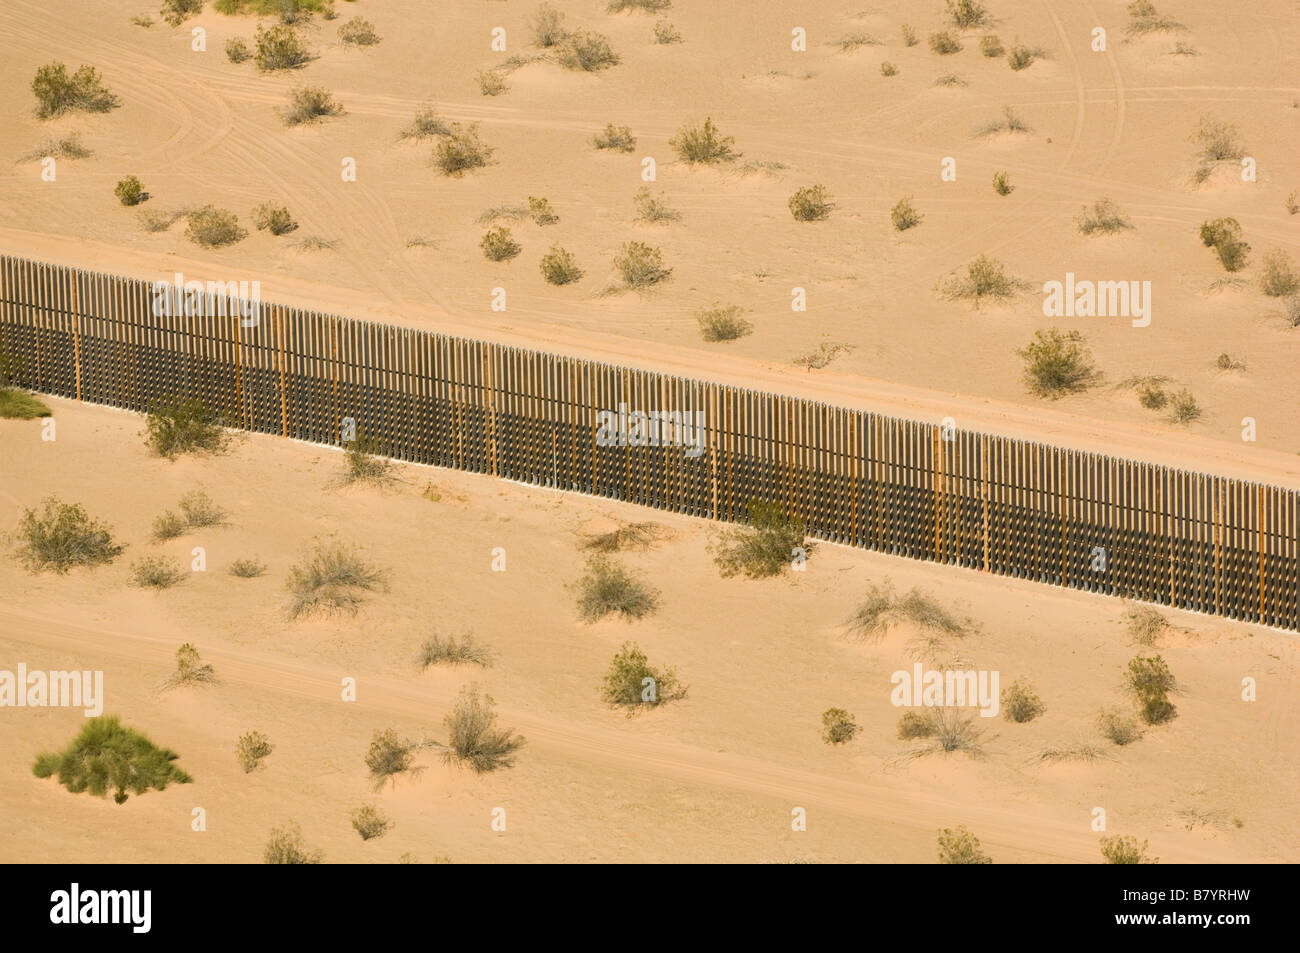 US Mexico Border fence, AERIAL, Imperial Dunes near Calexico, California - Stock Image